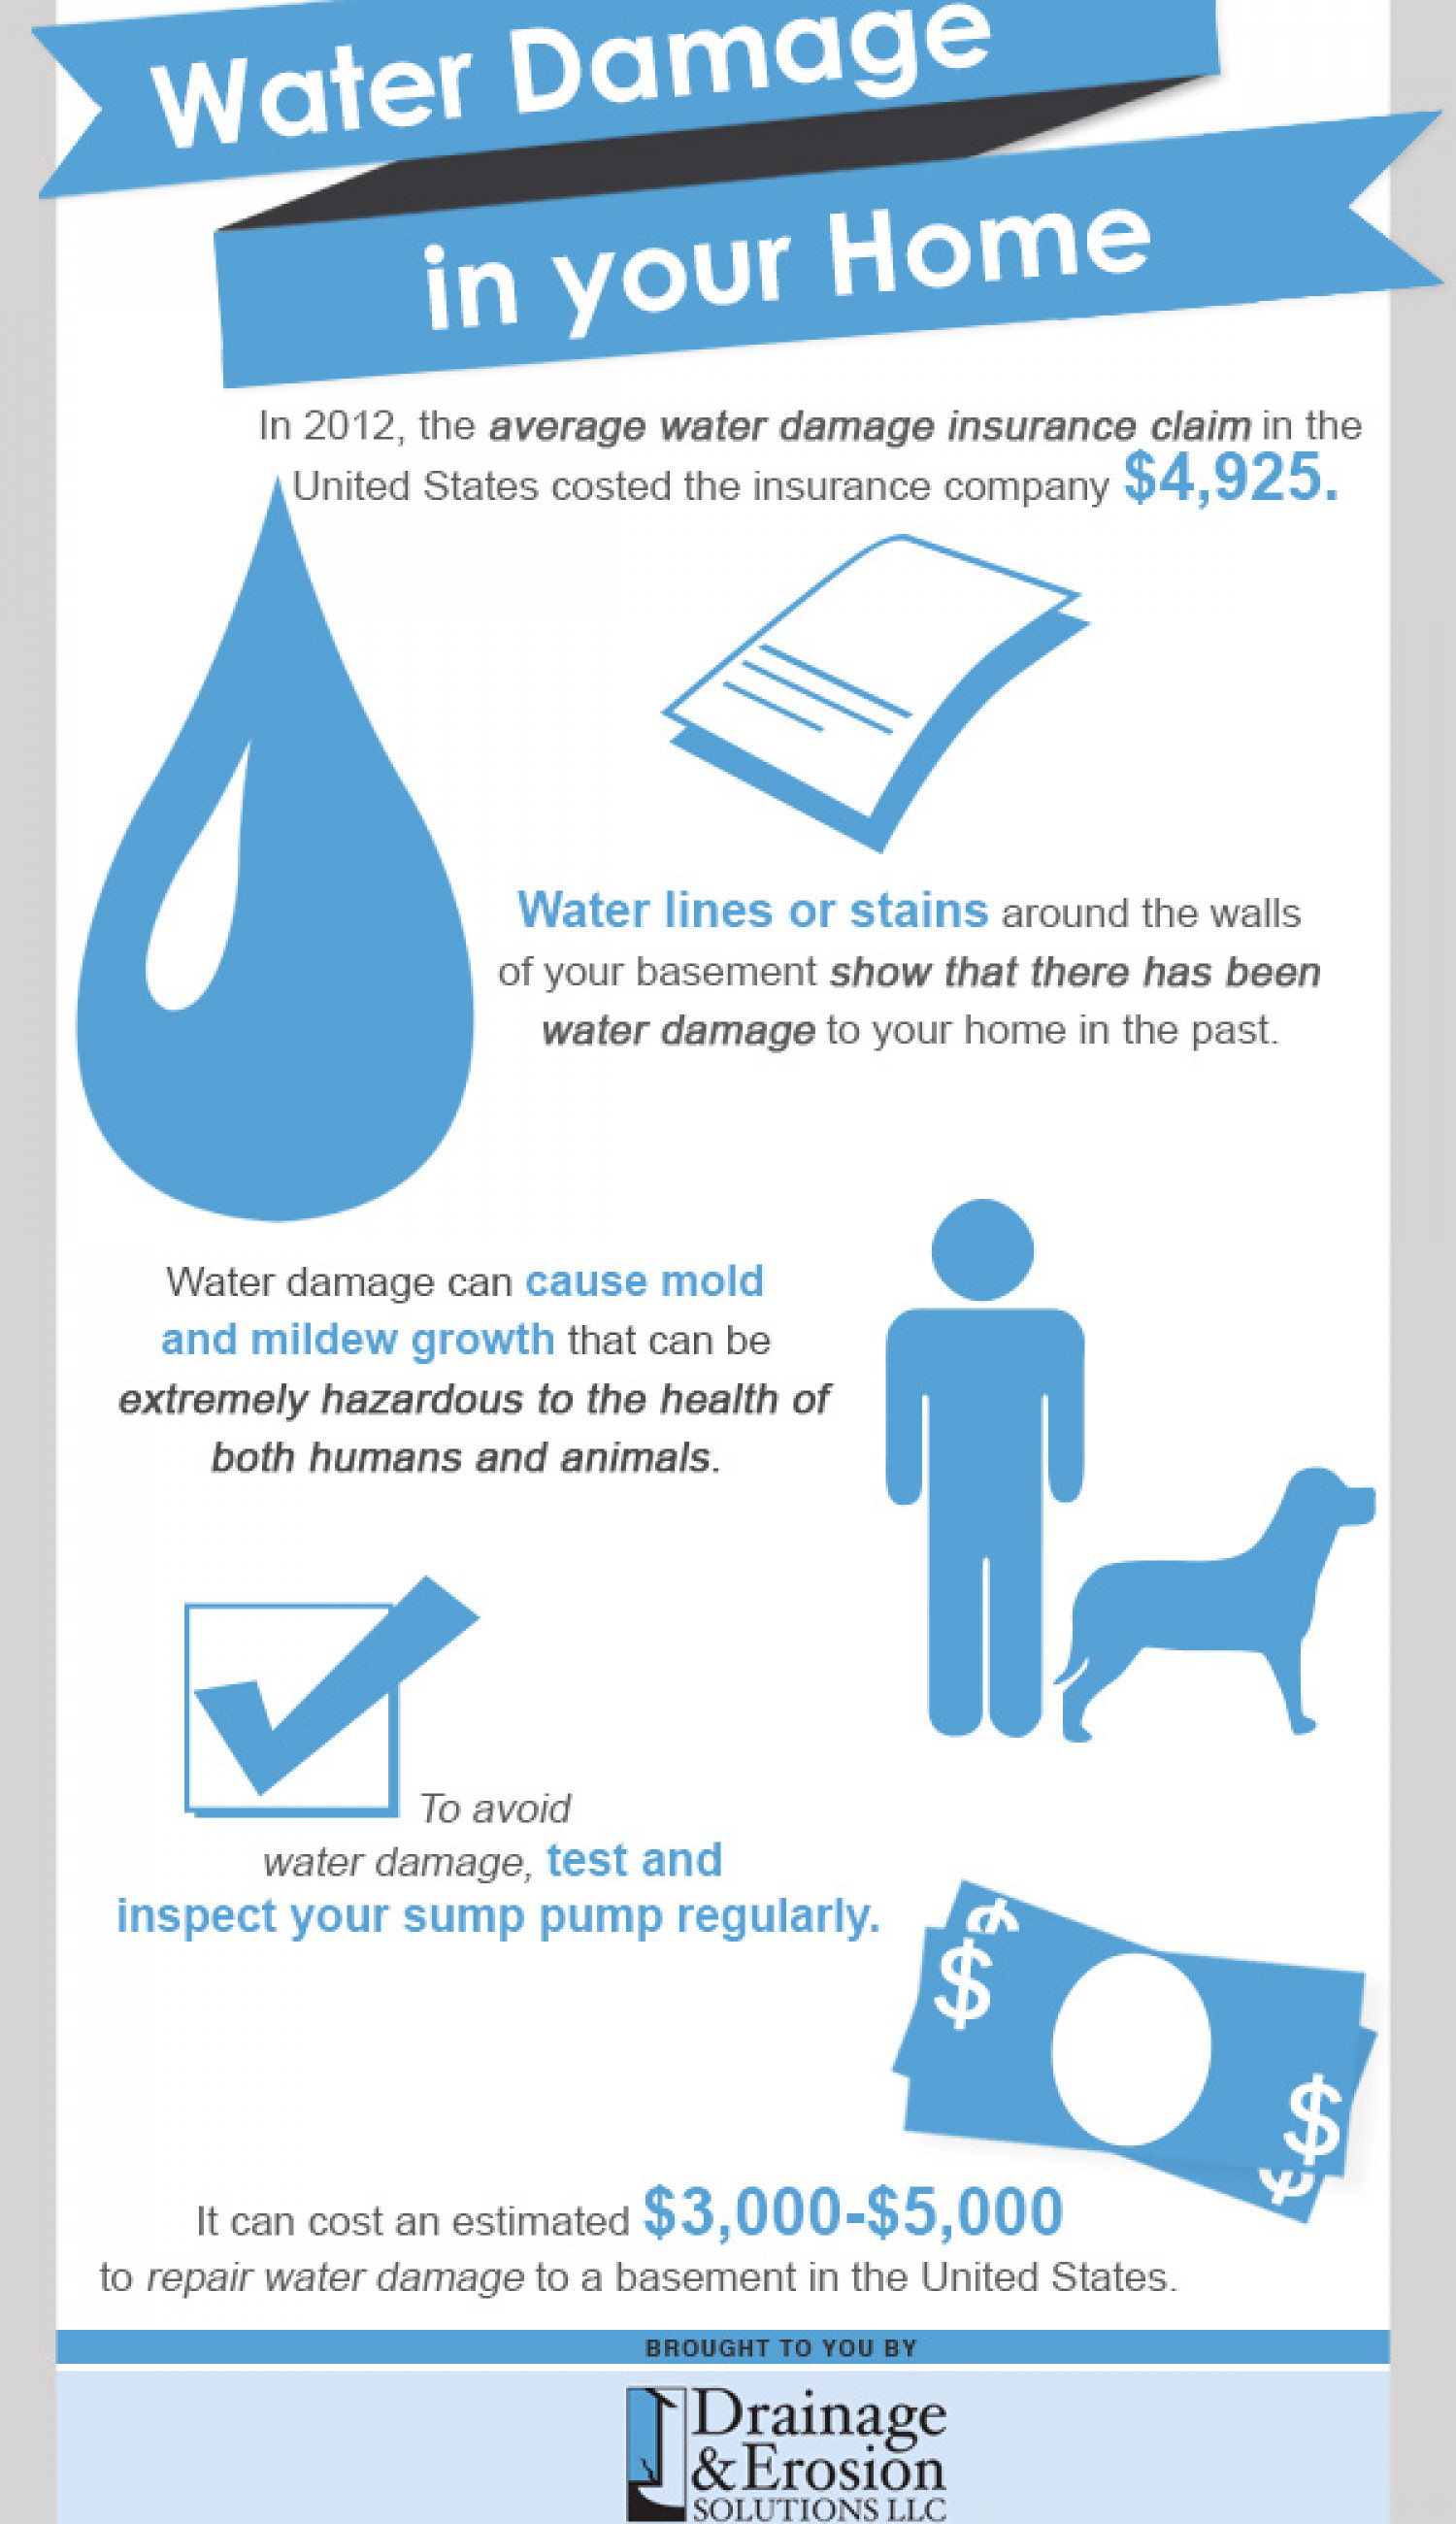 Water Damage in your Home Infographic